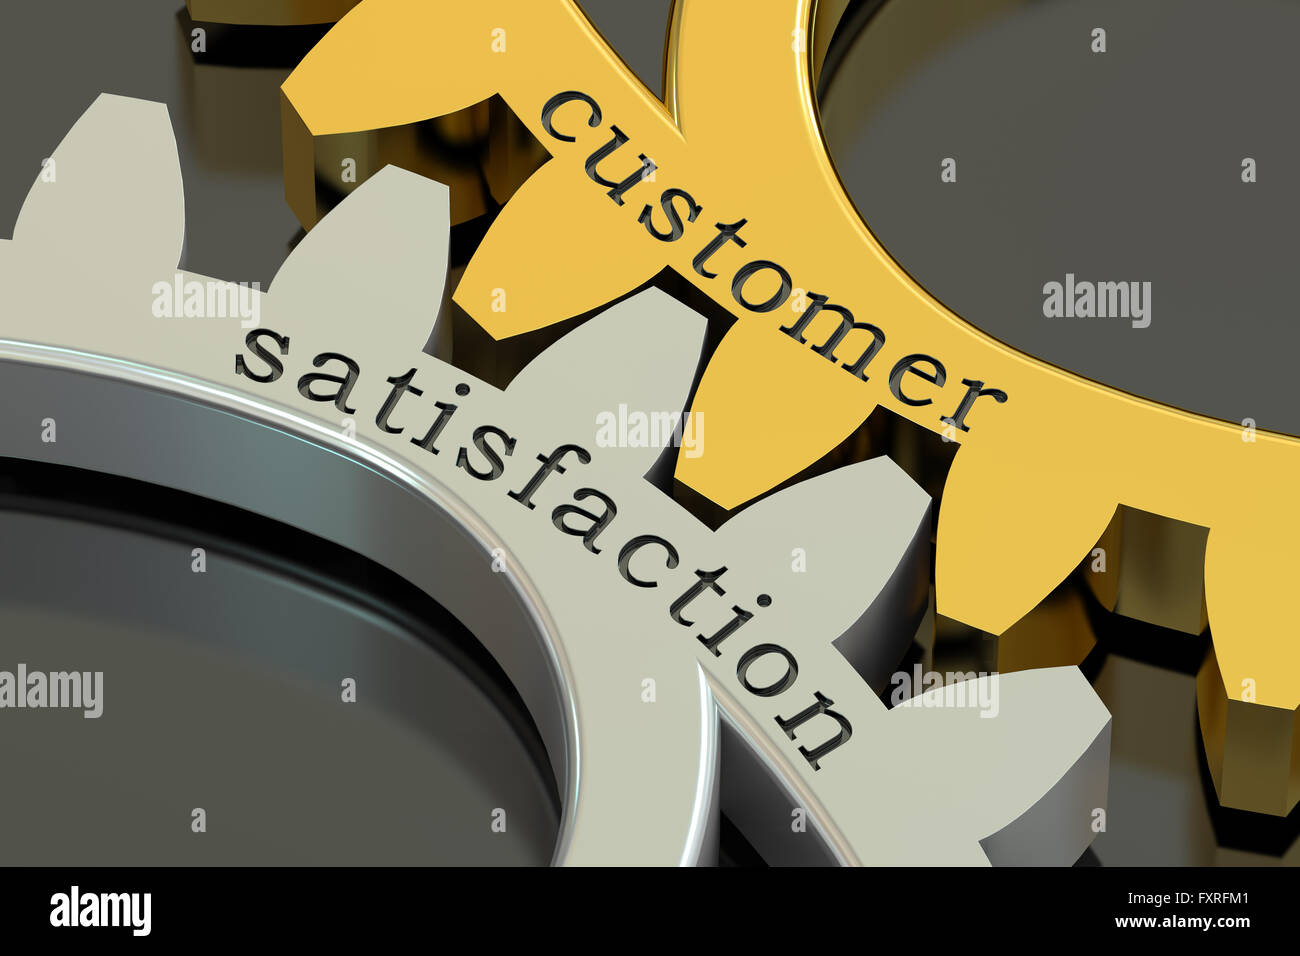 Customer Satisfaction concept on the gearwheels, 3D rendering - Stock Image